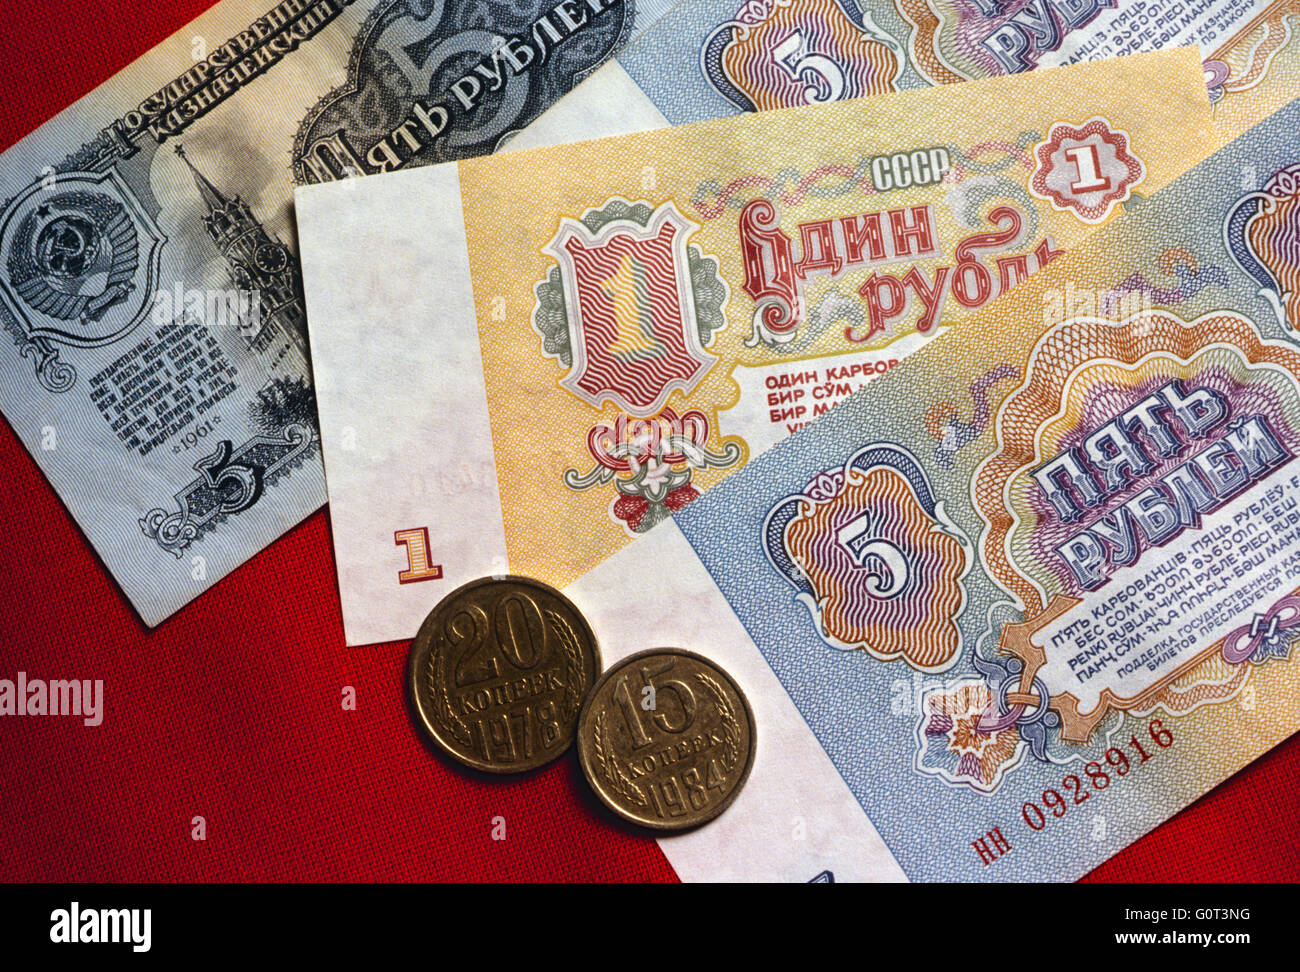 Paper currency and coins from Russian Federation; former Soviet Union; USSR; Russia - Stock Image